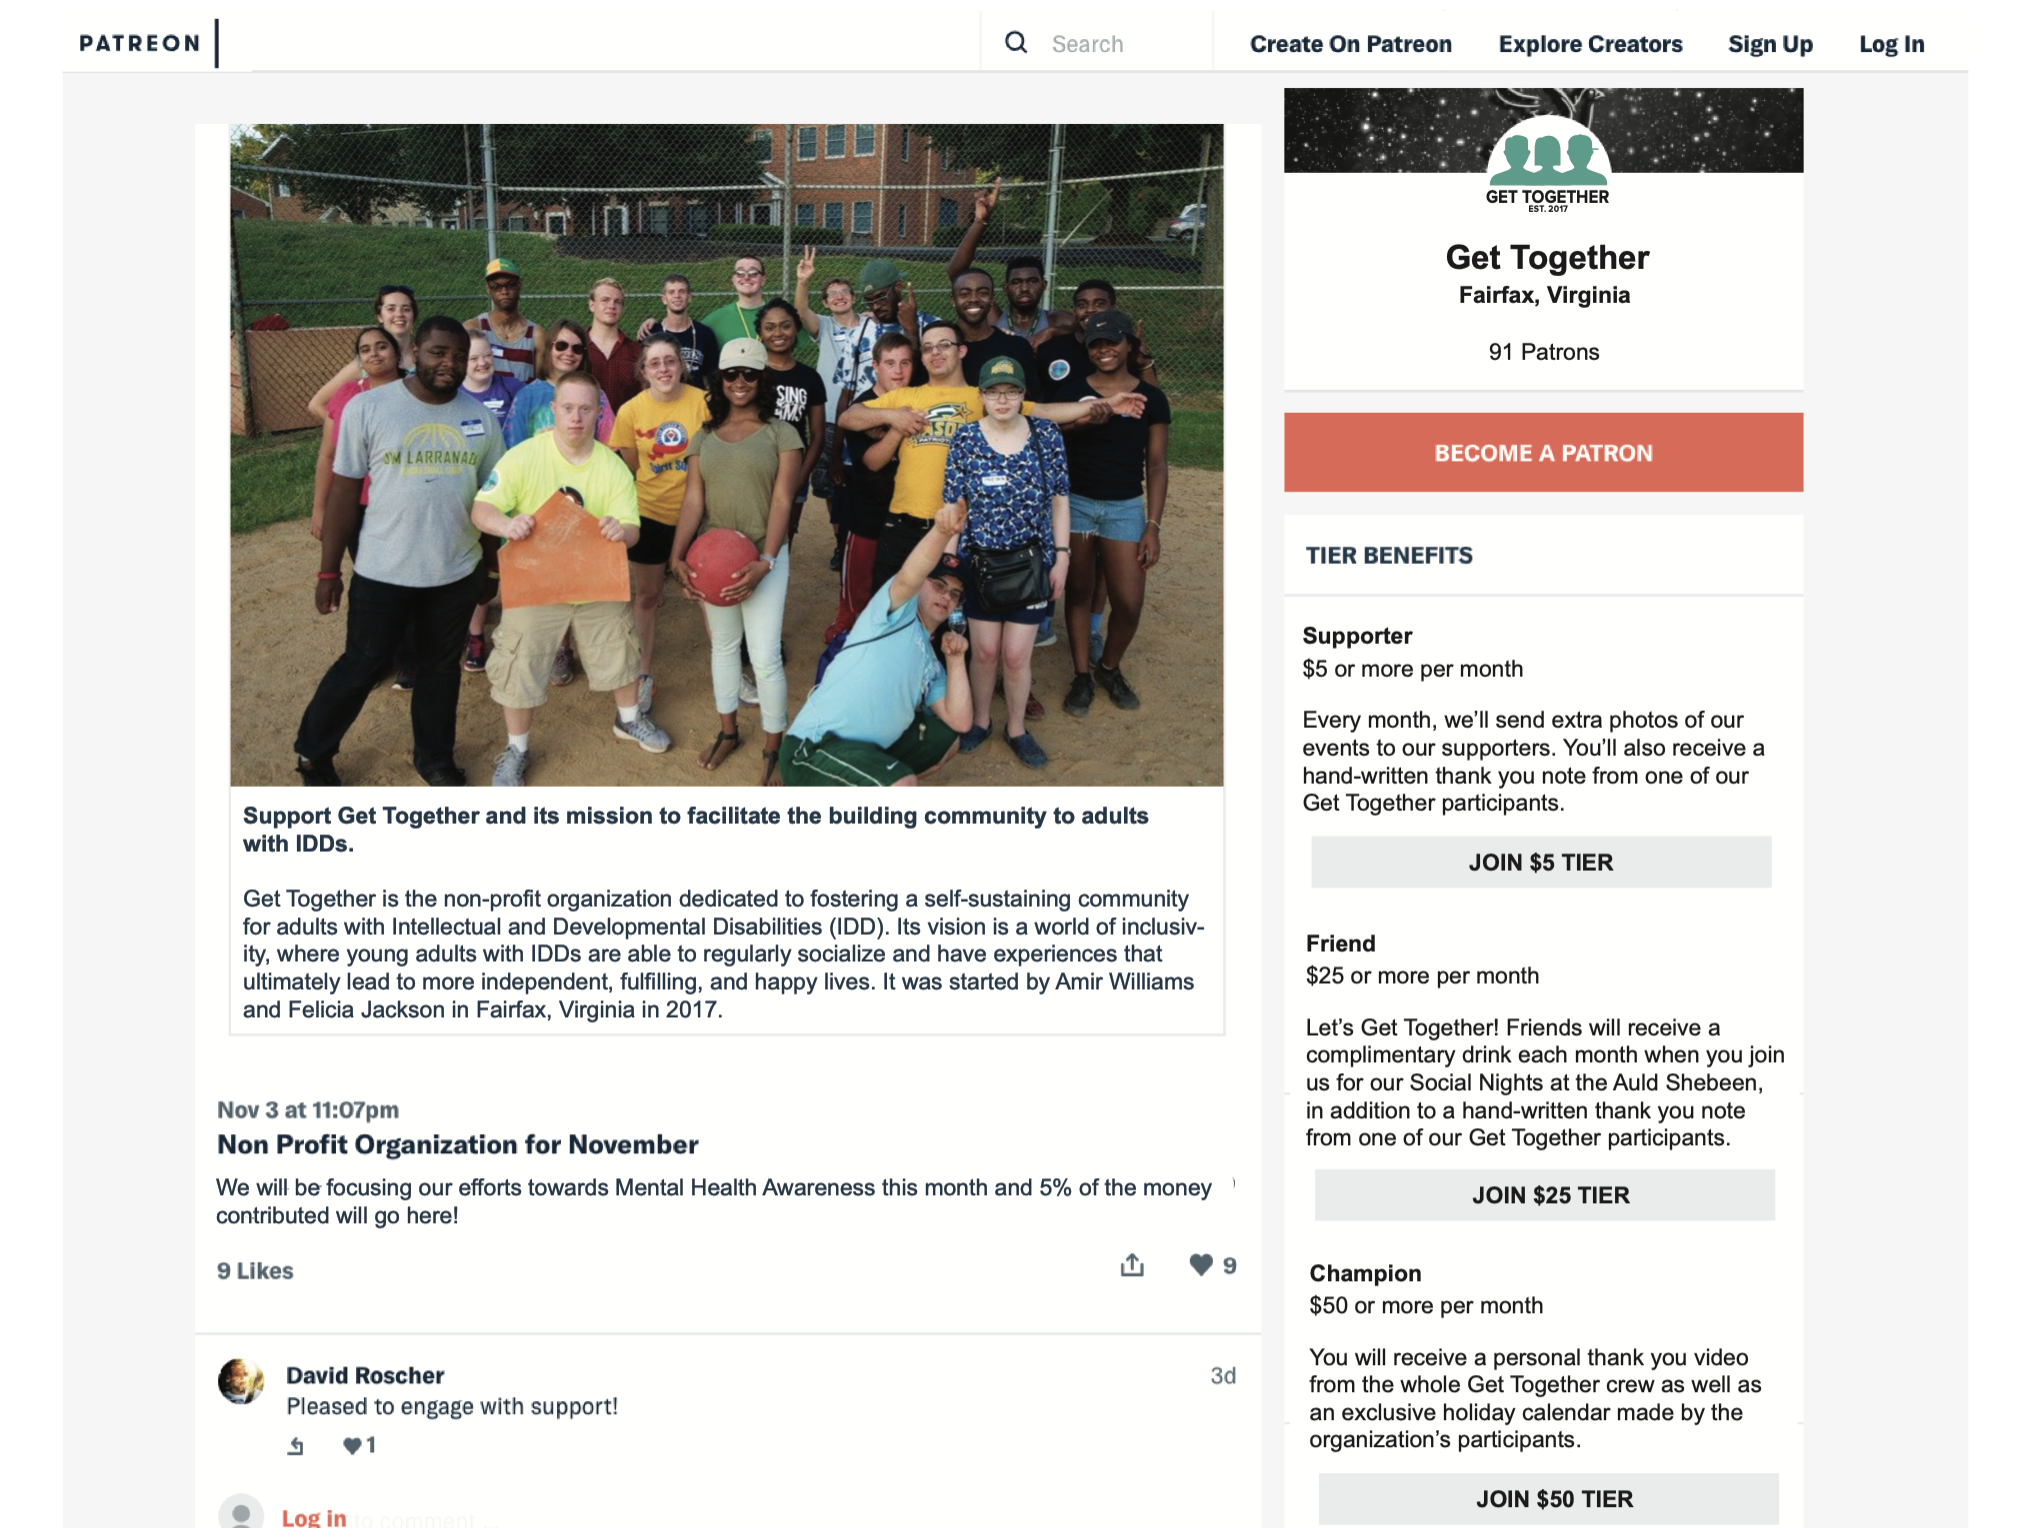 Creating a Patreon page was one of our recommendations to Out'N'About for soliciting regular donations as a way to move away from time consuming fundraising events which is currently their main source of income.